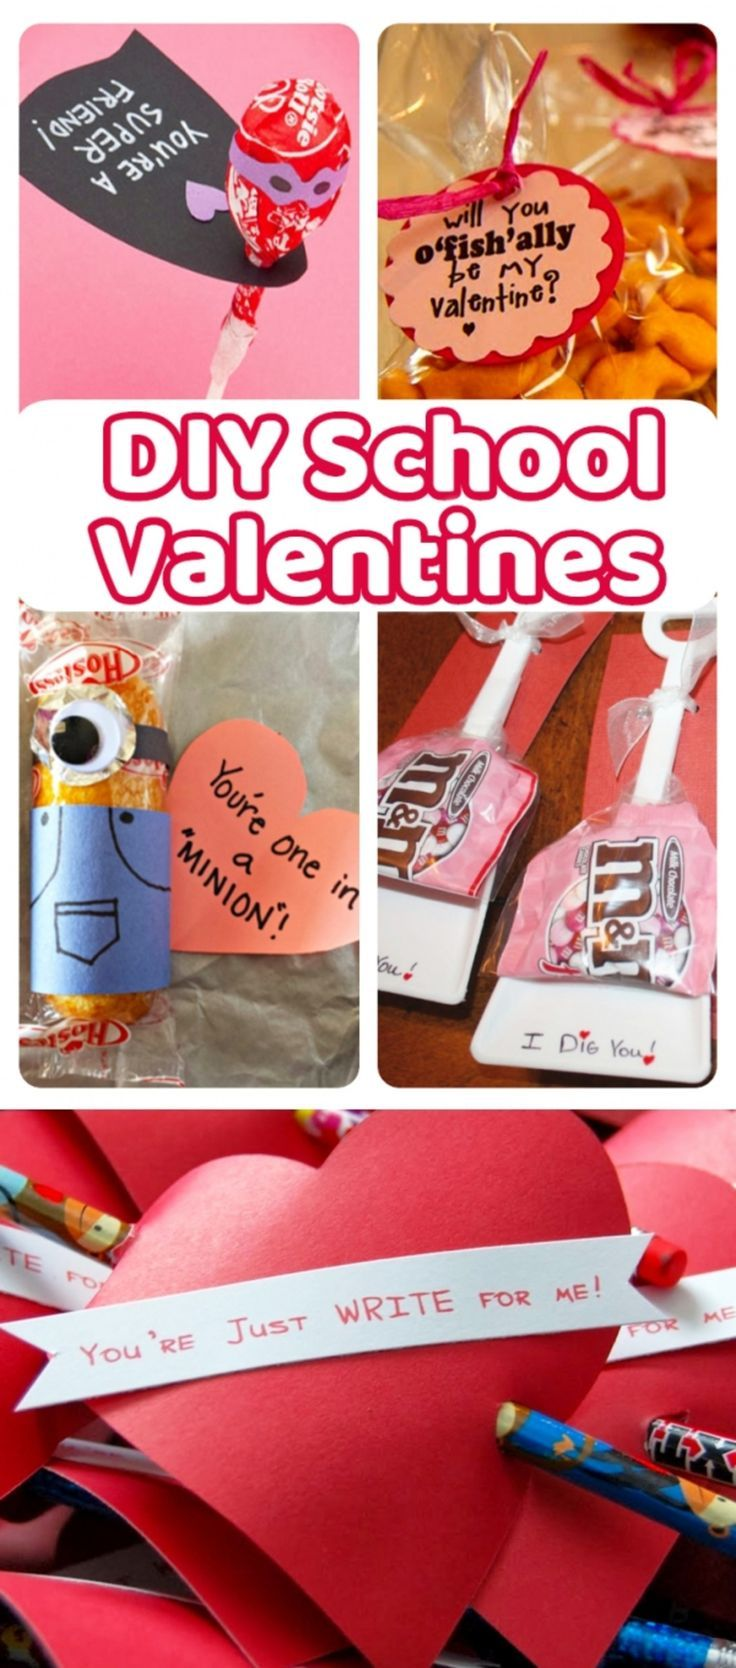 Valentines Day - DIY handmade Valentines Cards for kids to give at school.